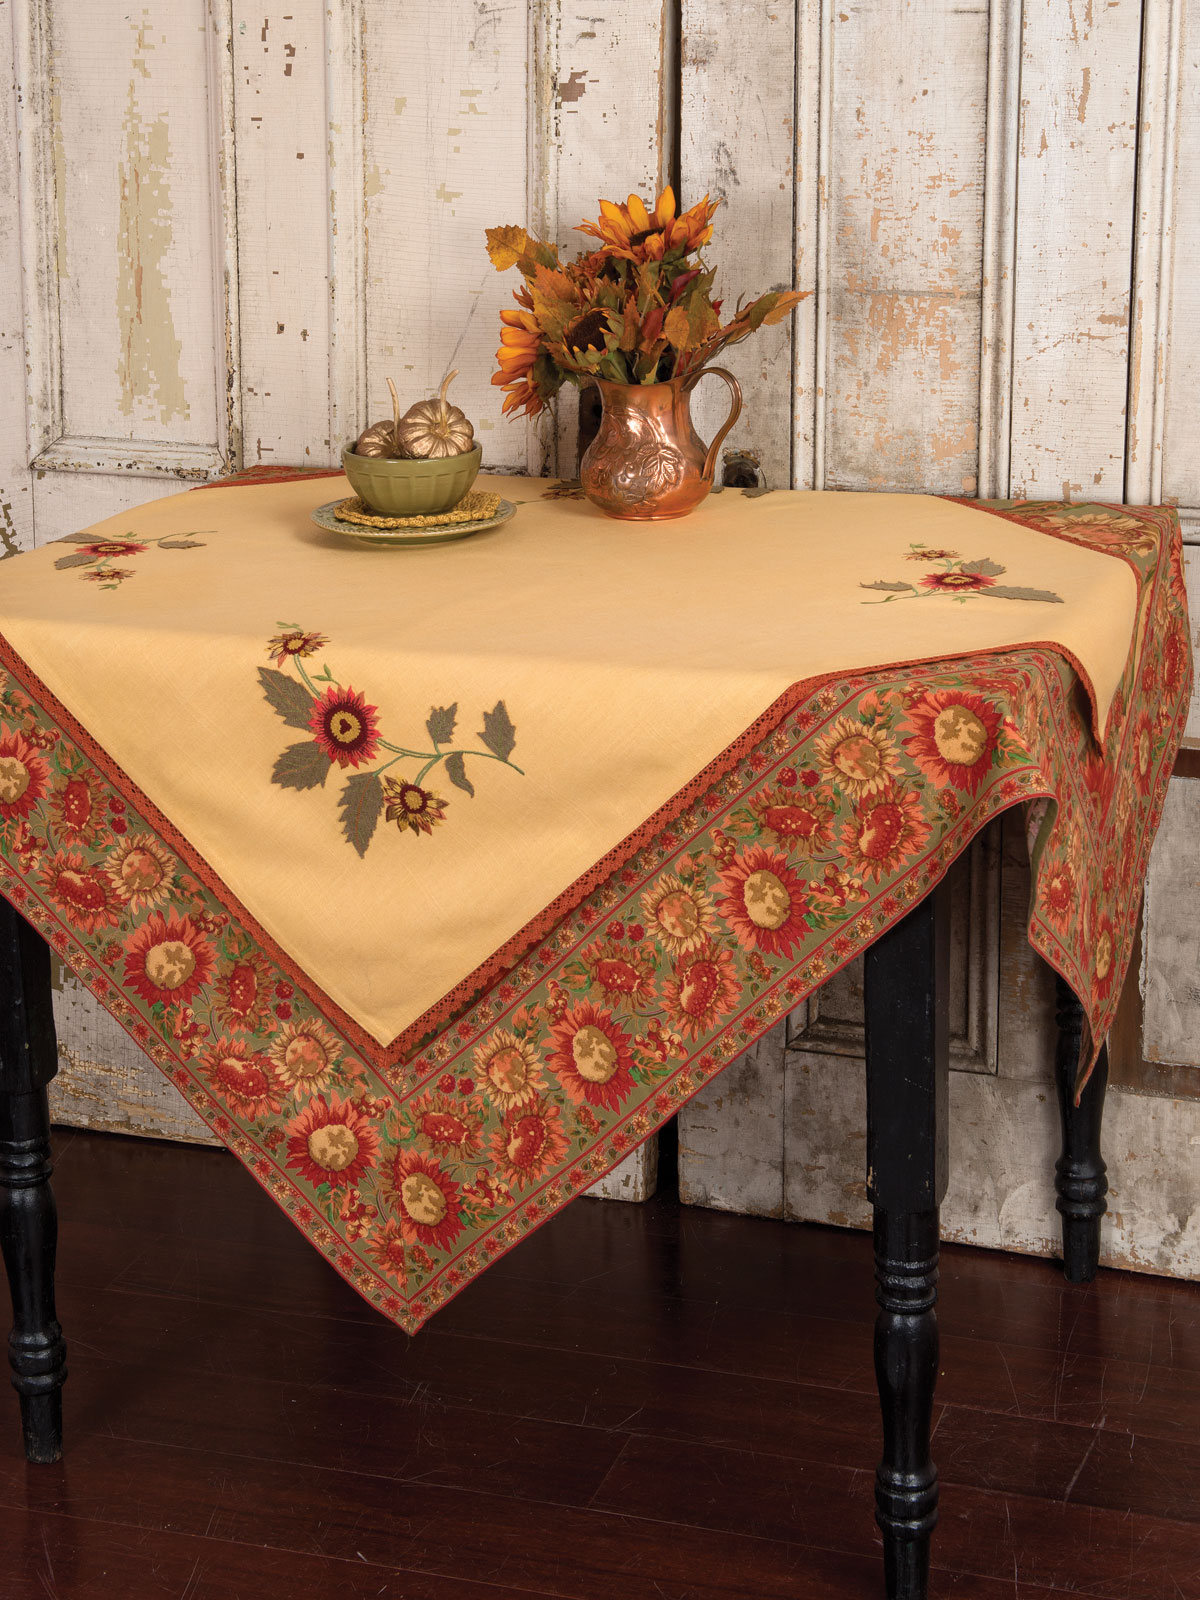 Sunflower Embroidered Topper Cloth  Linens & Kitchen. Kitchen Design Sussex. 2020 Kitchen Design V9 Crack. U Shaped Kitchen Designs With Breakfast Bar. Kitchen Room Designer. Kitchen Cabinets Designer. Kitchen Designs For Small Kitchens With Islands. Kitchen Designs For Split Level Homes. Kitchen Remodel Design Cost